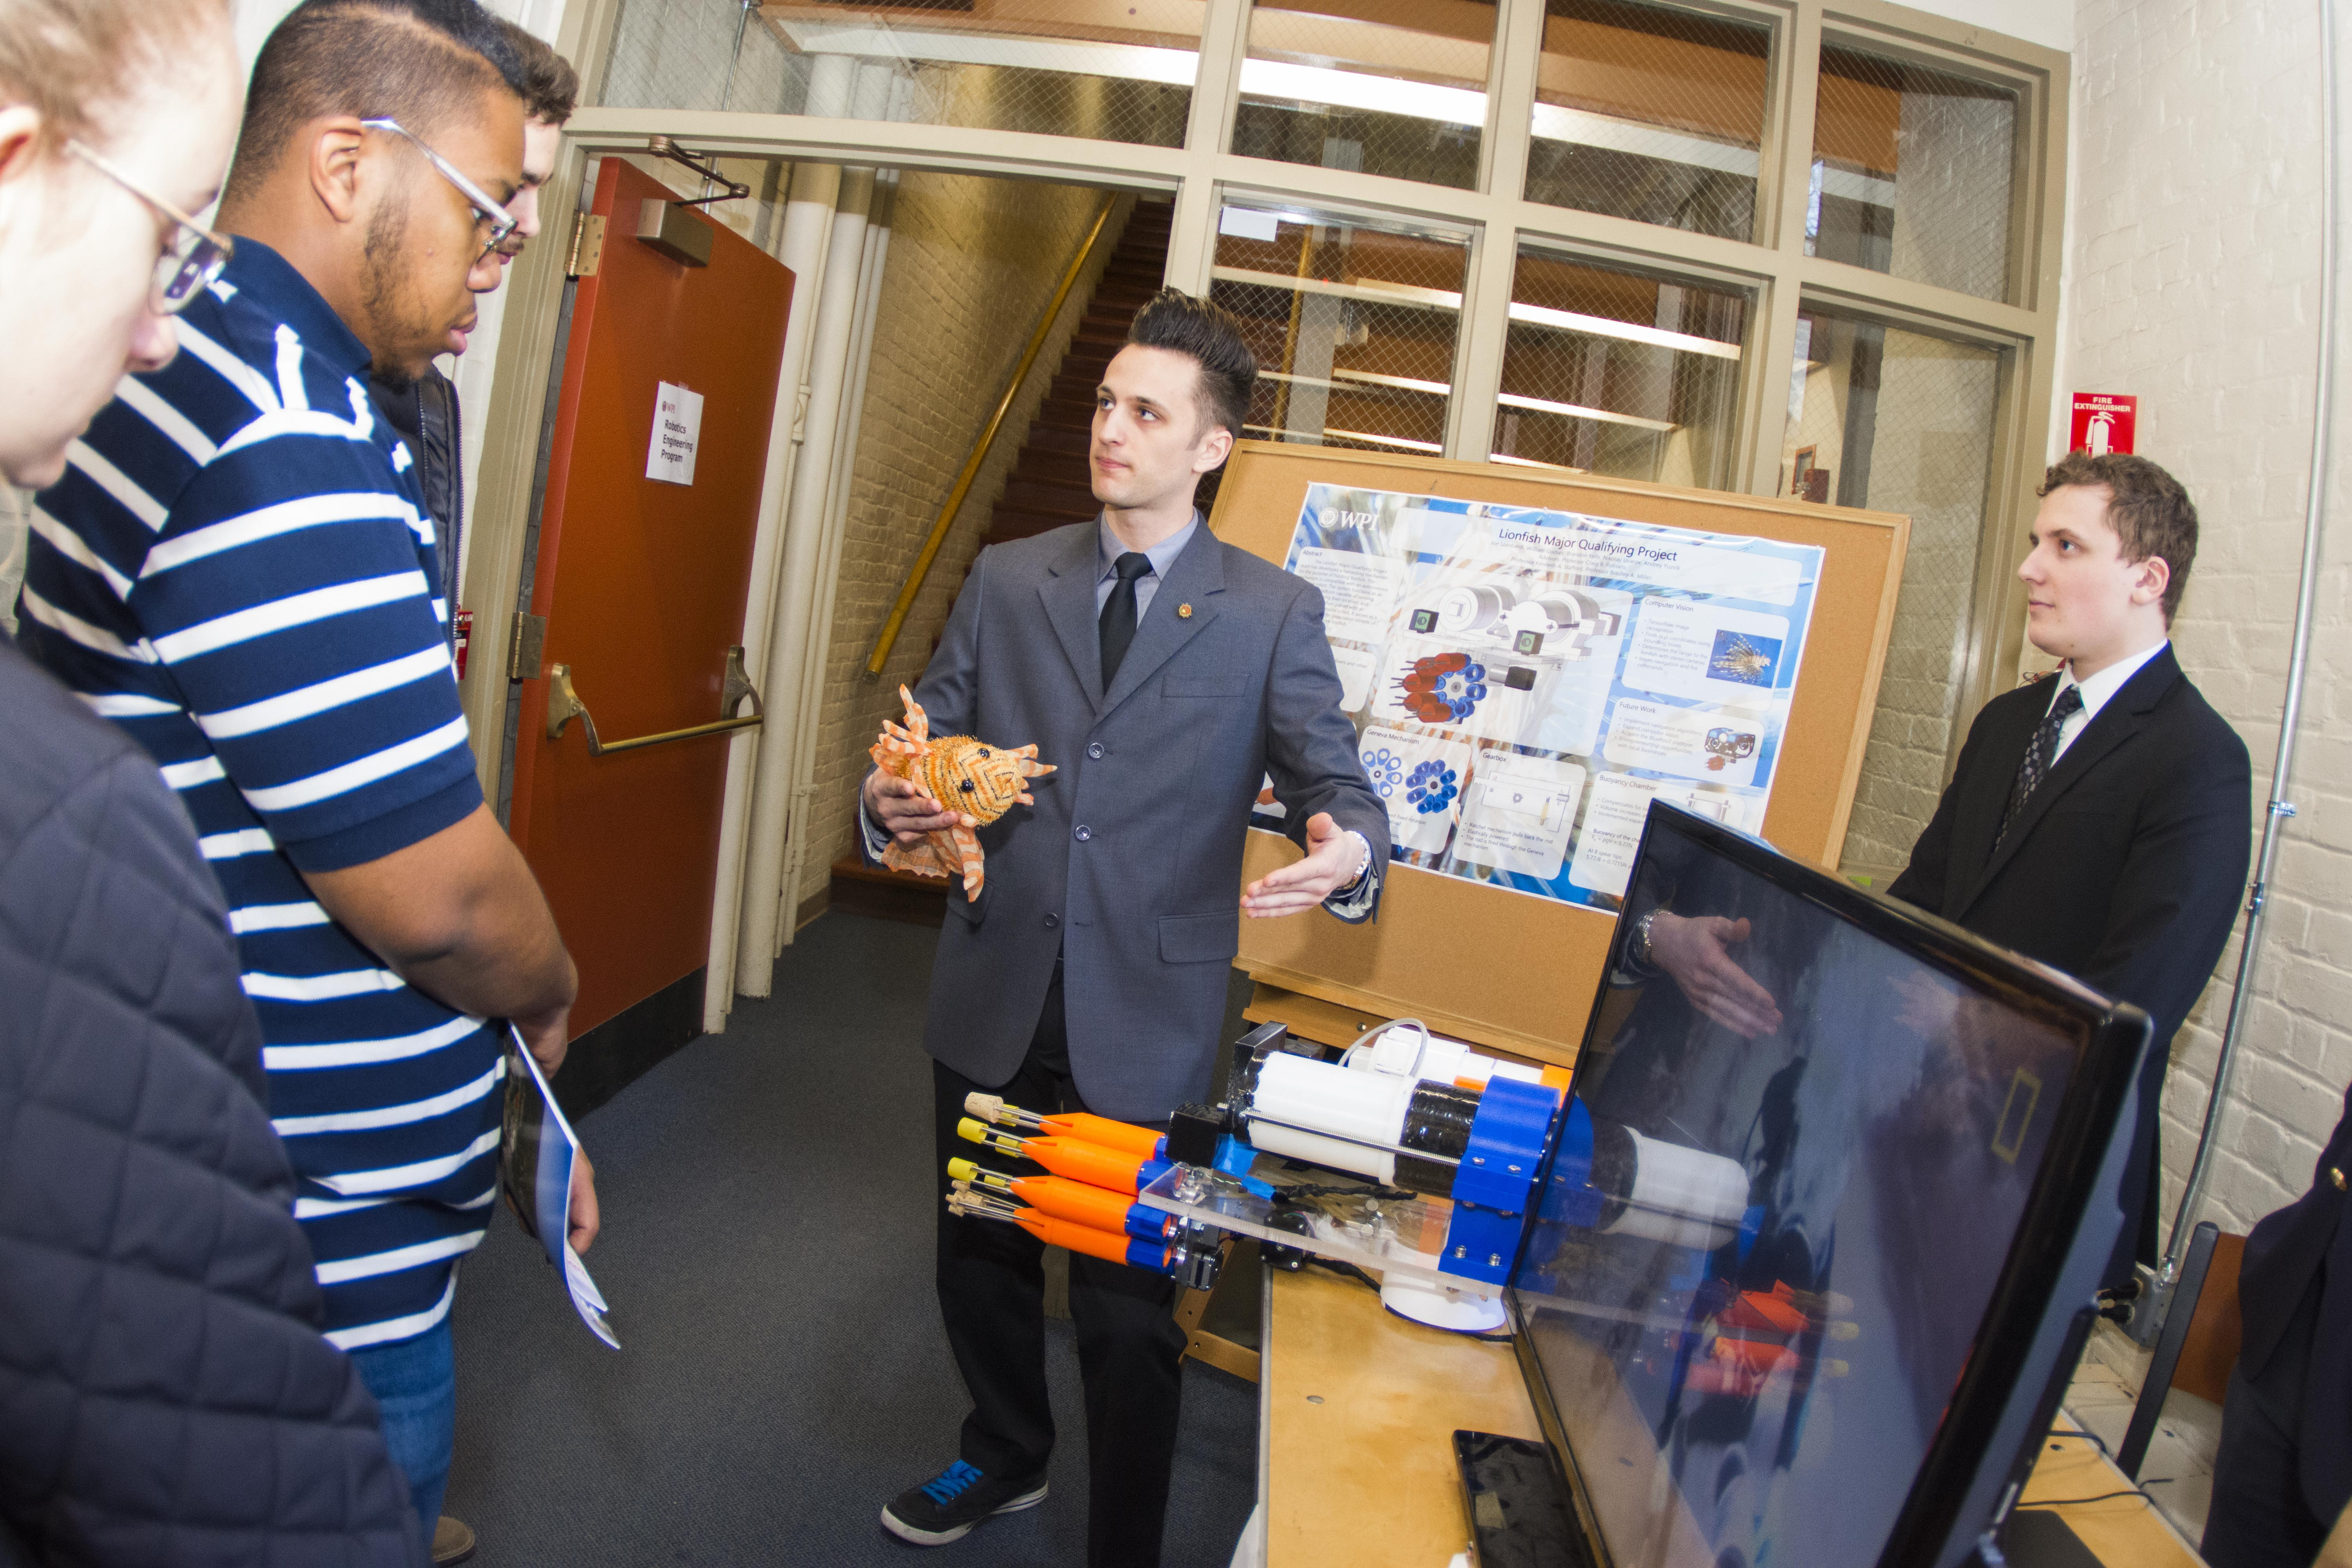 A student explains his team's MQP, a harvester to catch lion fish.